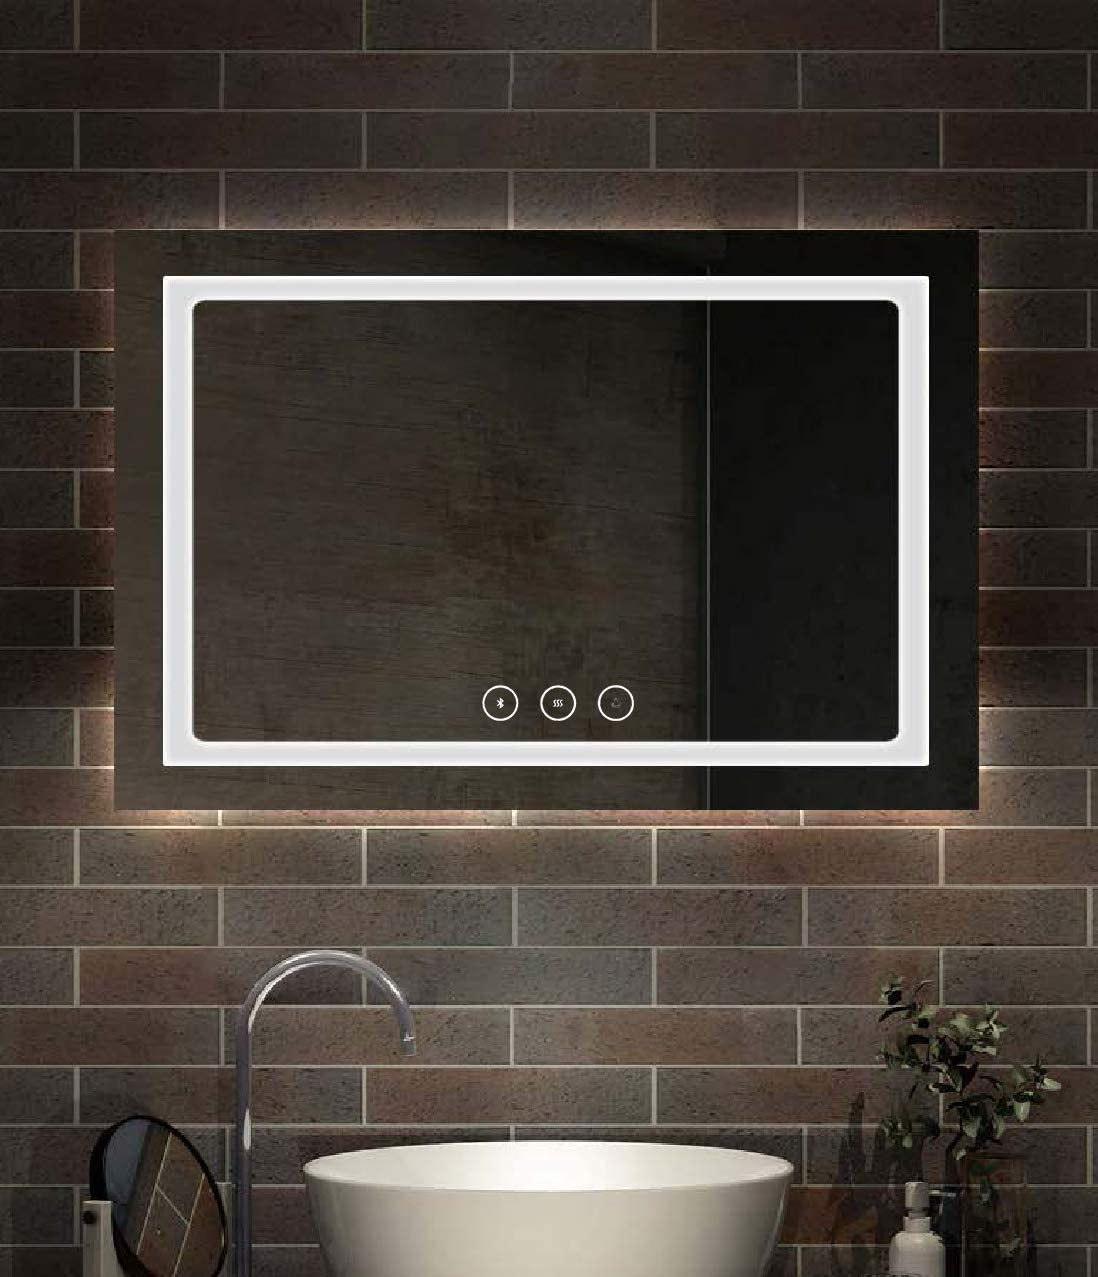 ZUI Space Horizontal LED Lighted Wall Mounted Modern Make Up Bathroom Mirror with Touch Button Z03-B1 48 x 36 in with Anti-Fog and Bluetooth Function